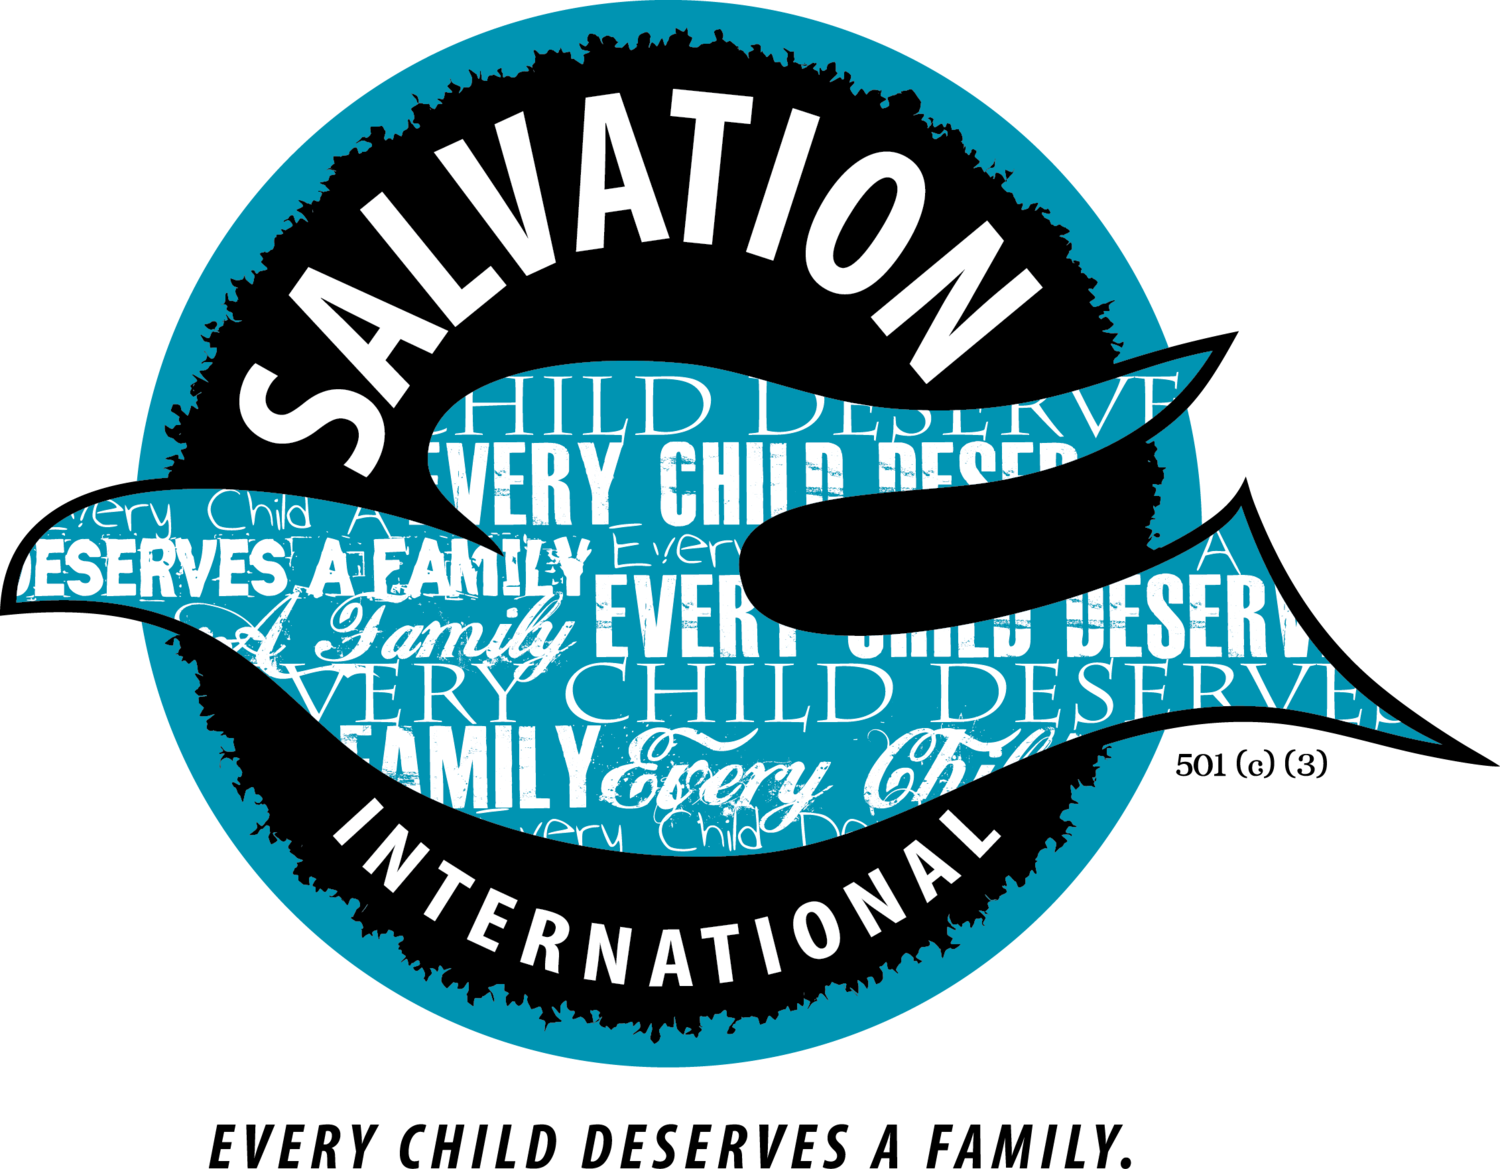 SALVATION INTERNATIONAL 2019